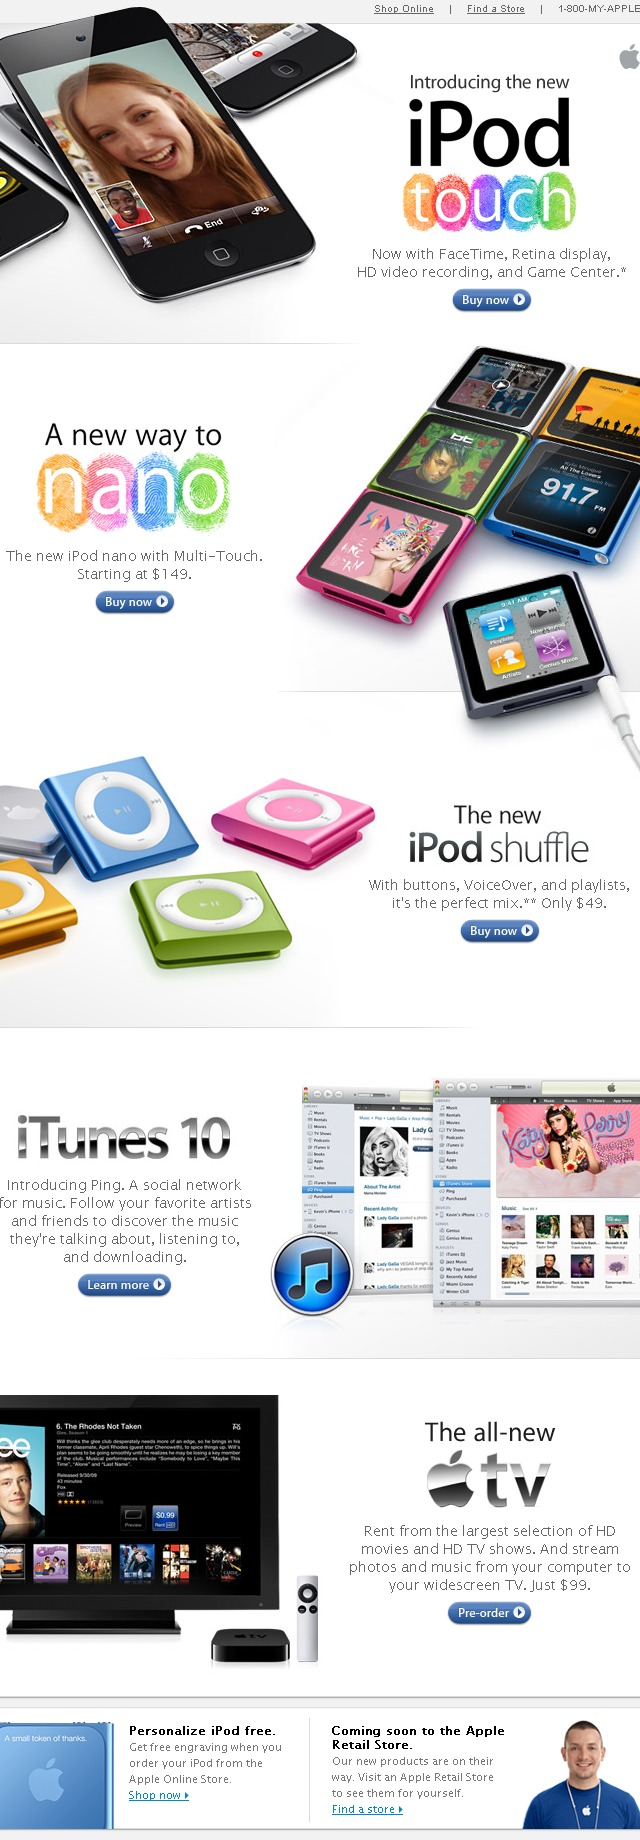 email Apple new iPods iTunes 10 TV